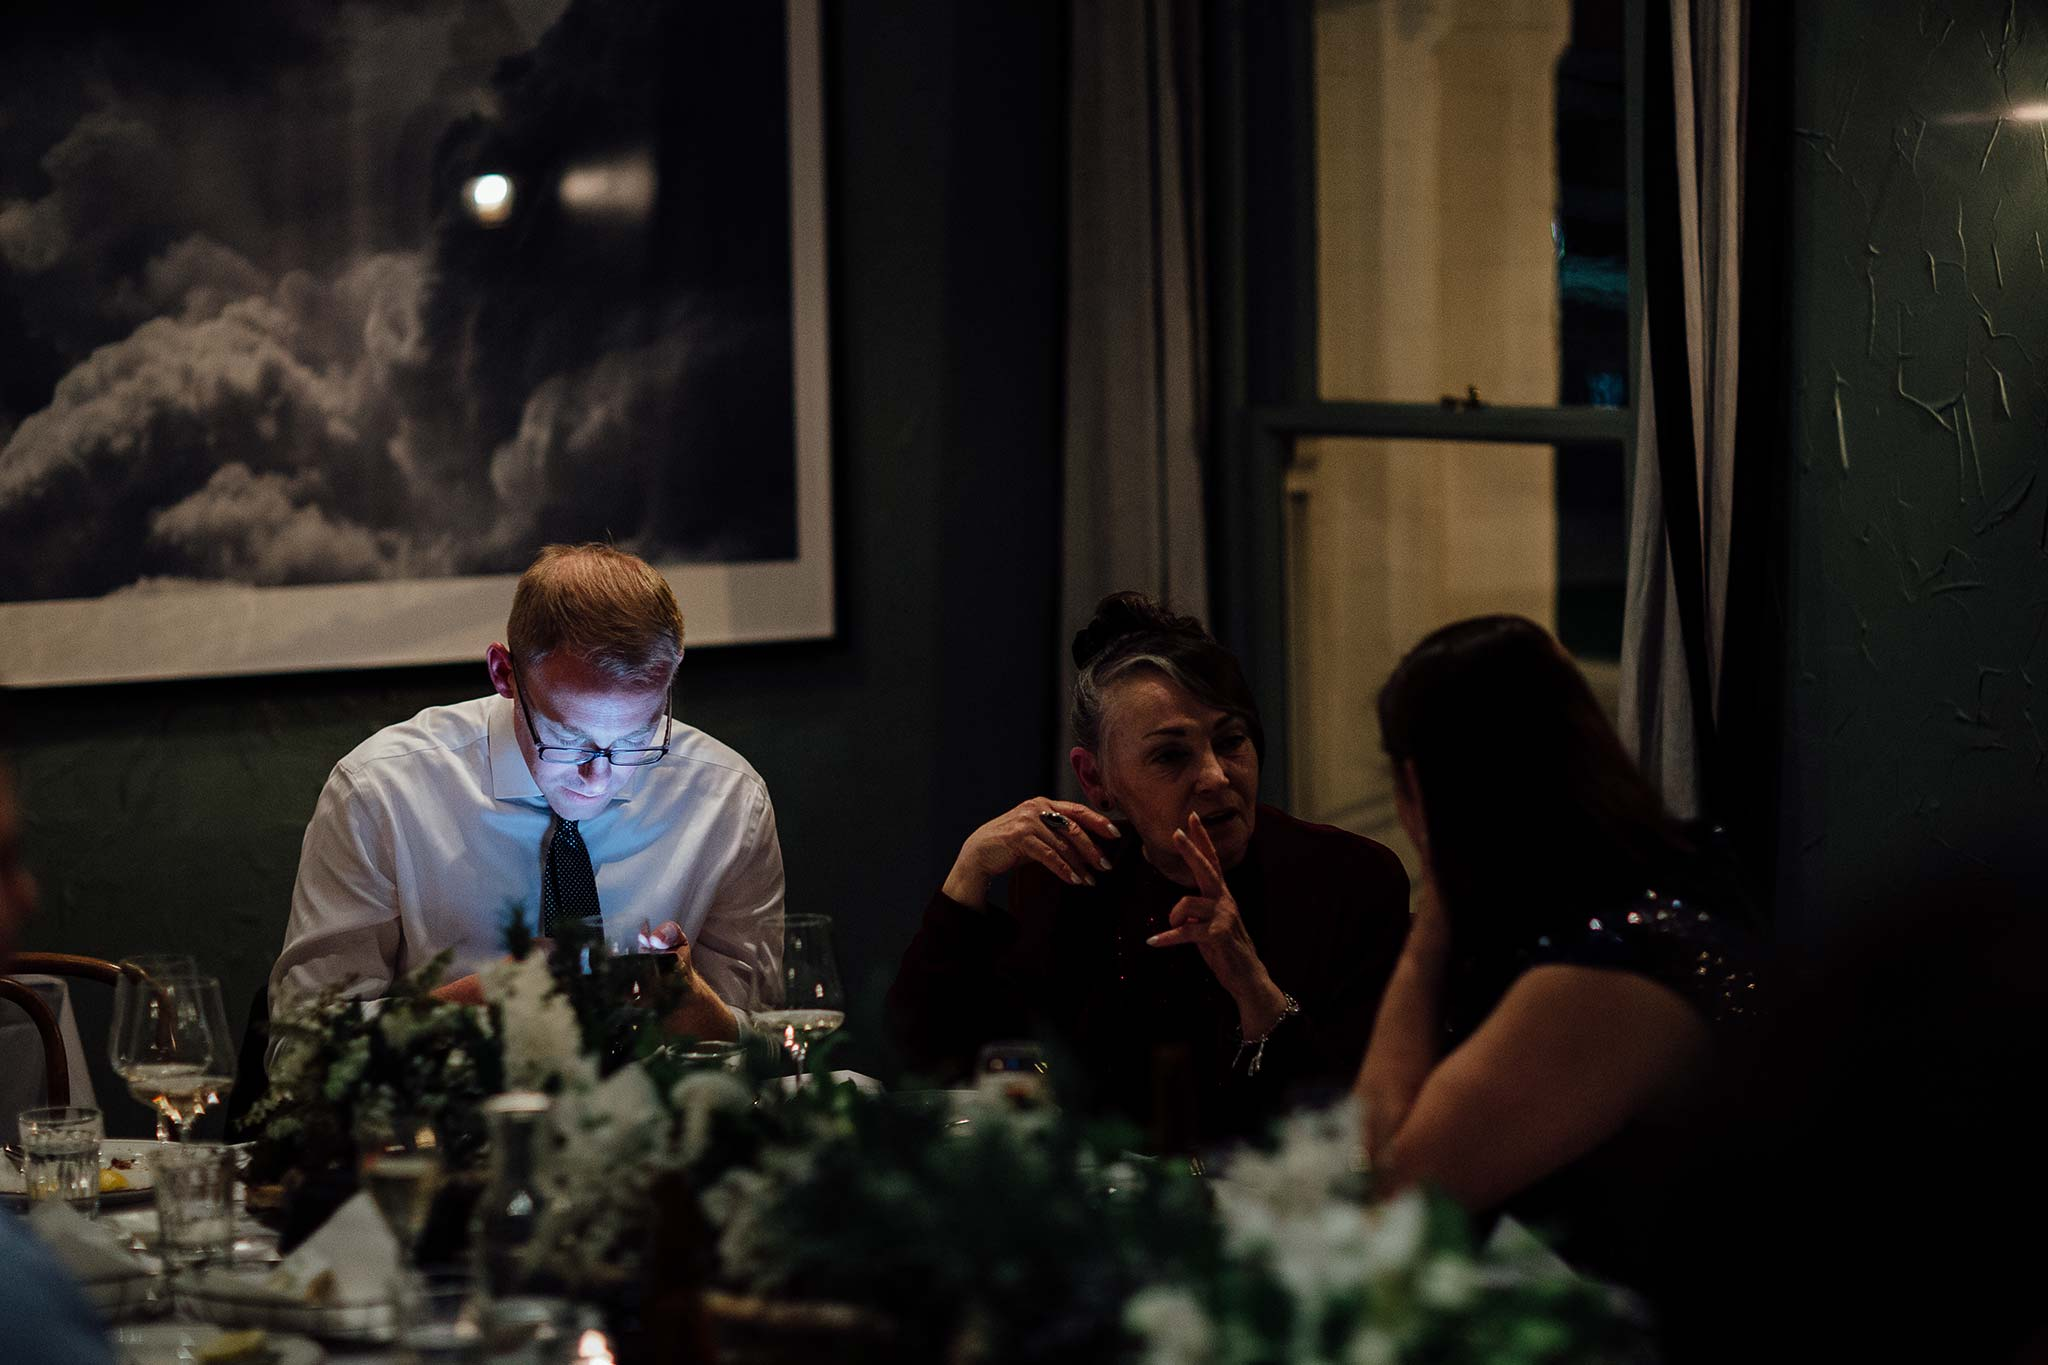 melbourne-entrecote-wedding-reception-dinner